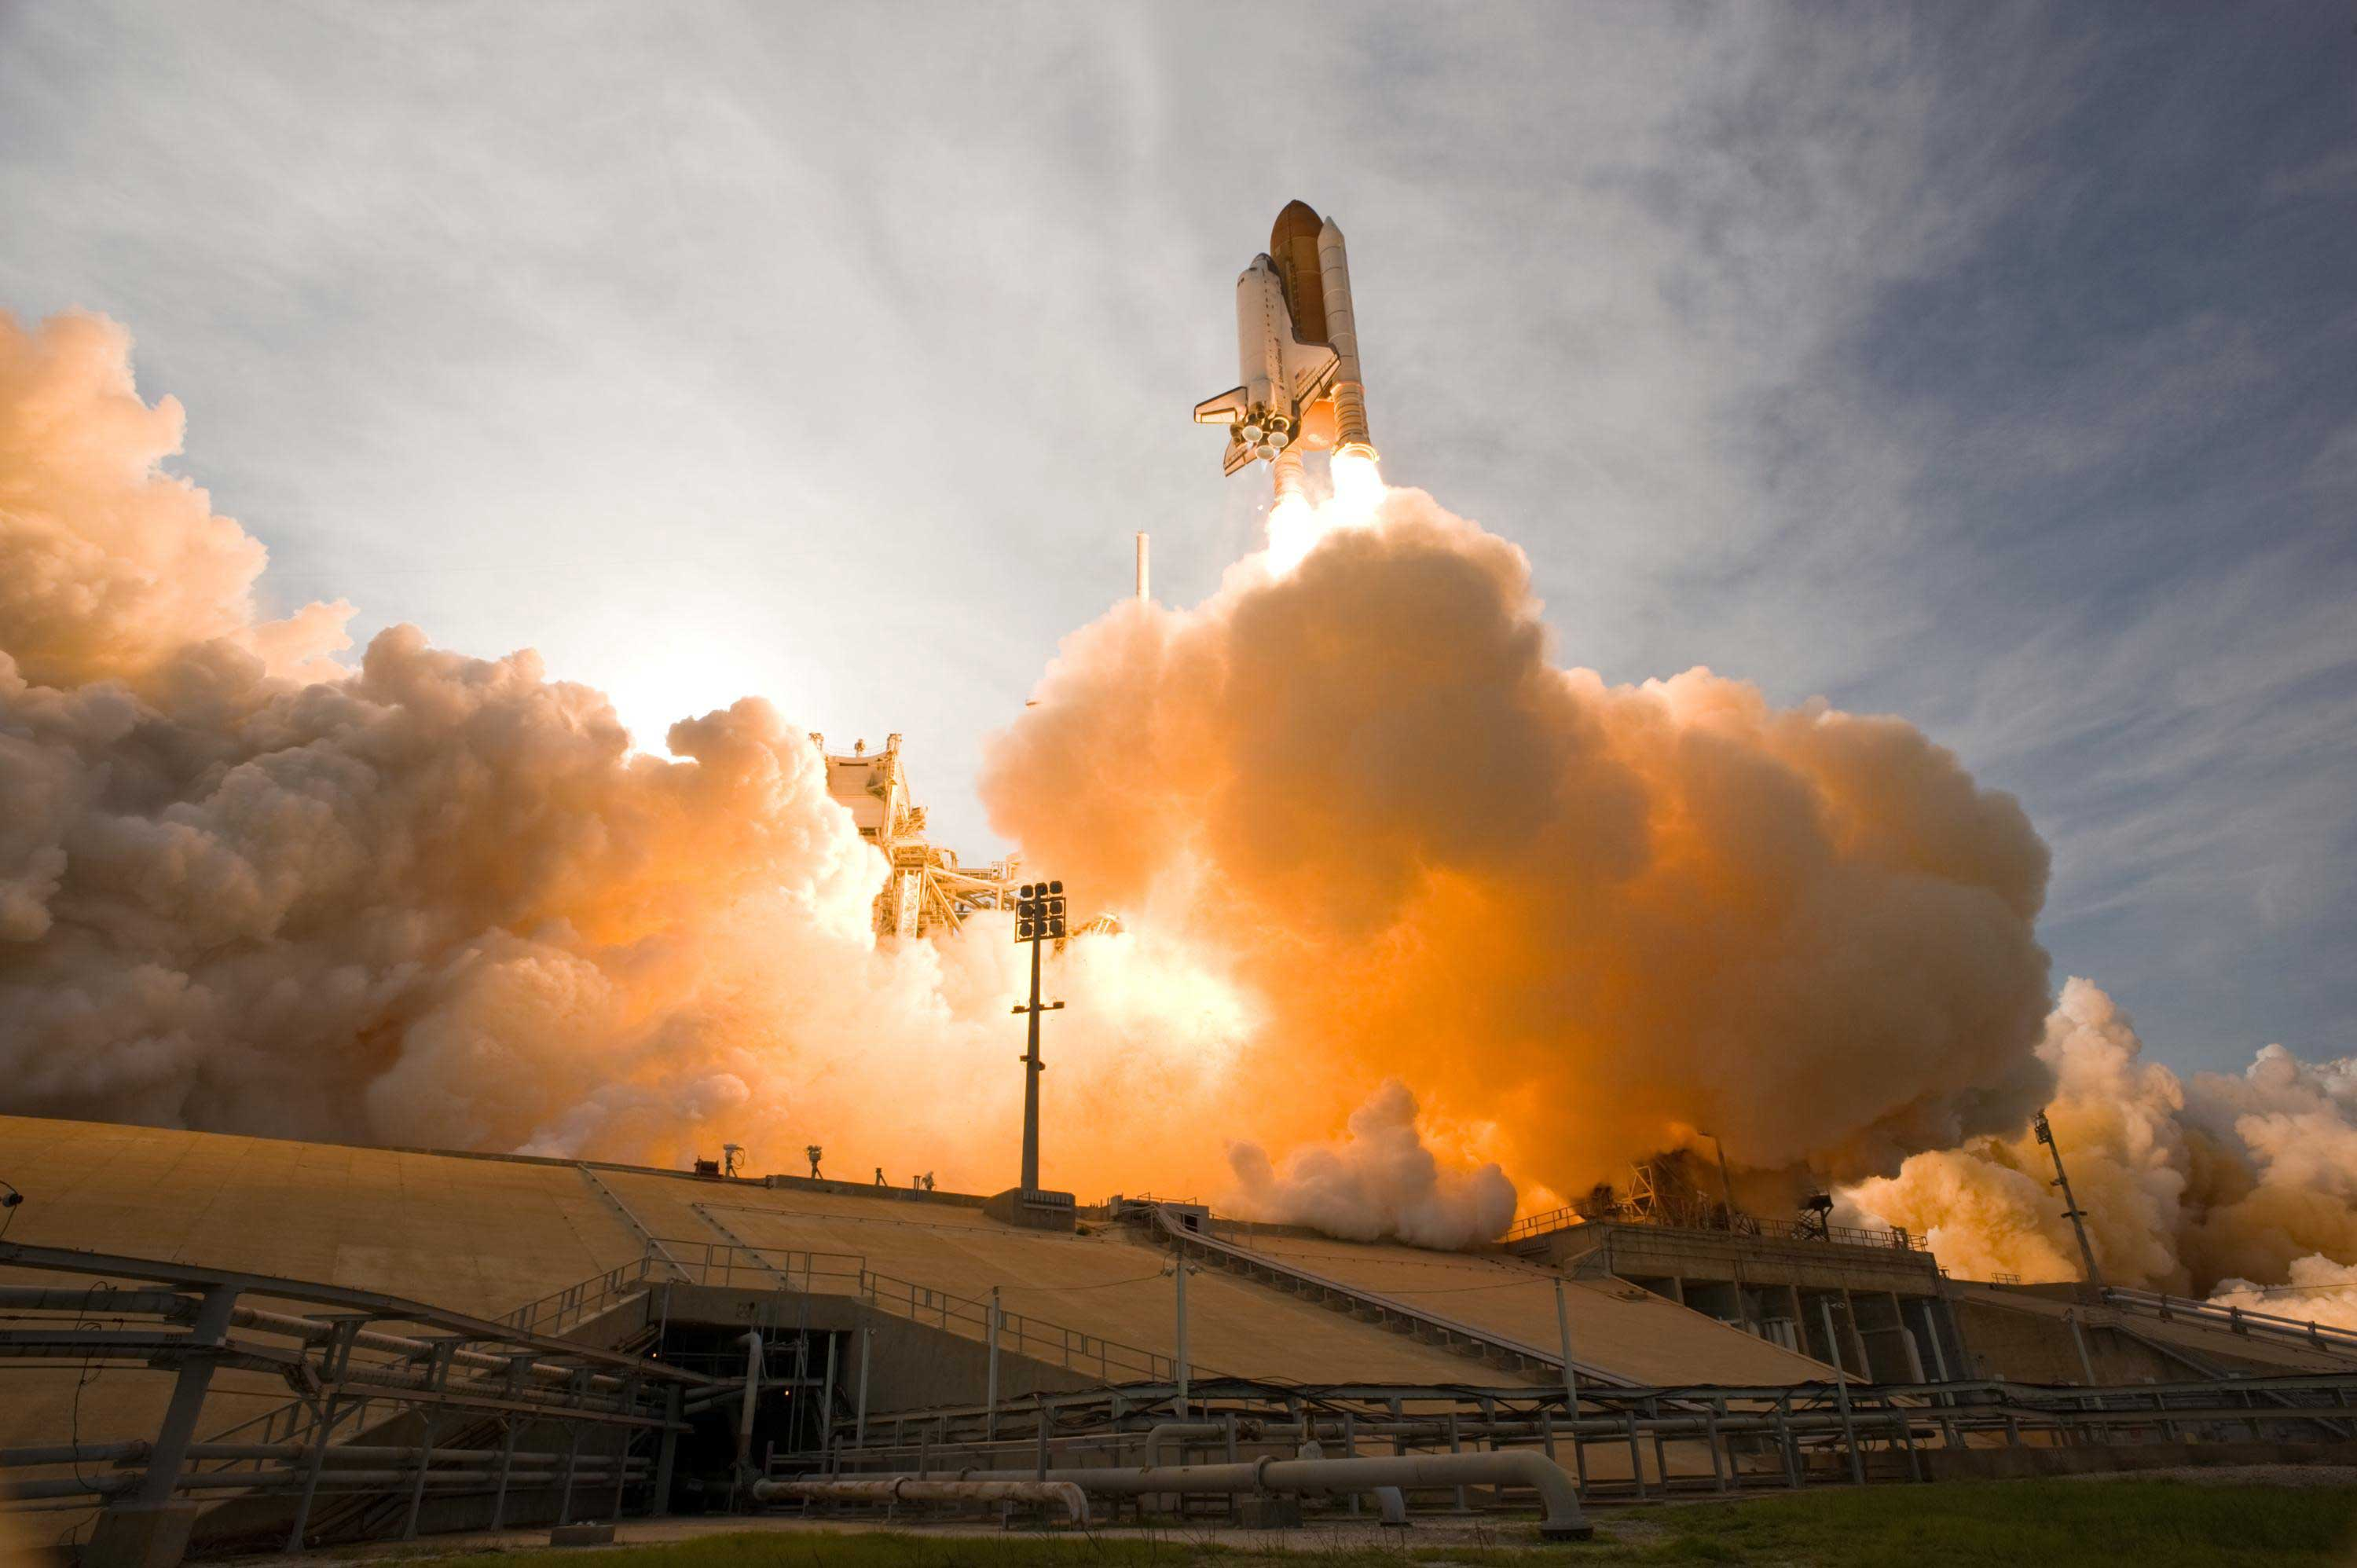 space shuttle nasa launch pad fueling hd wallpapers Car Pictures